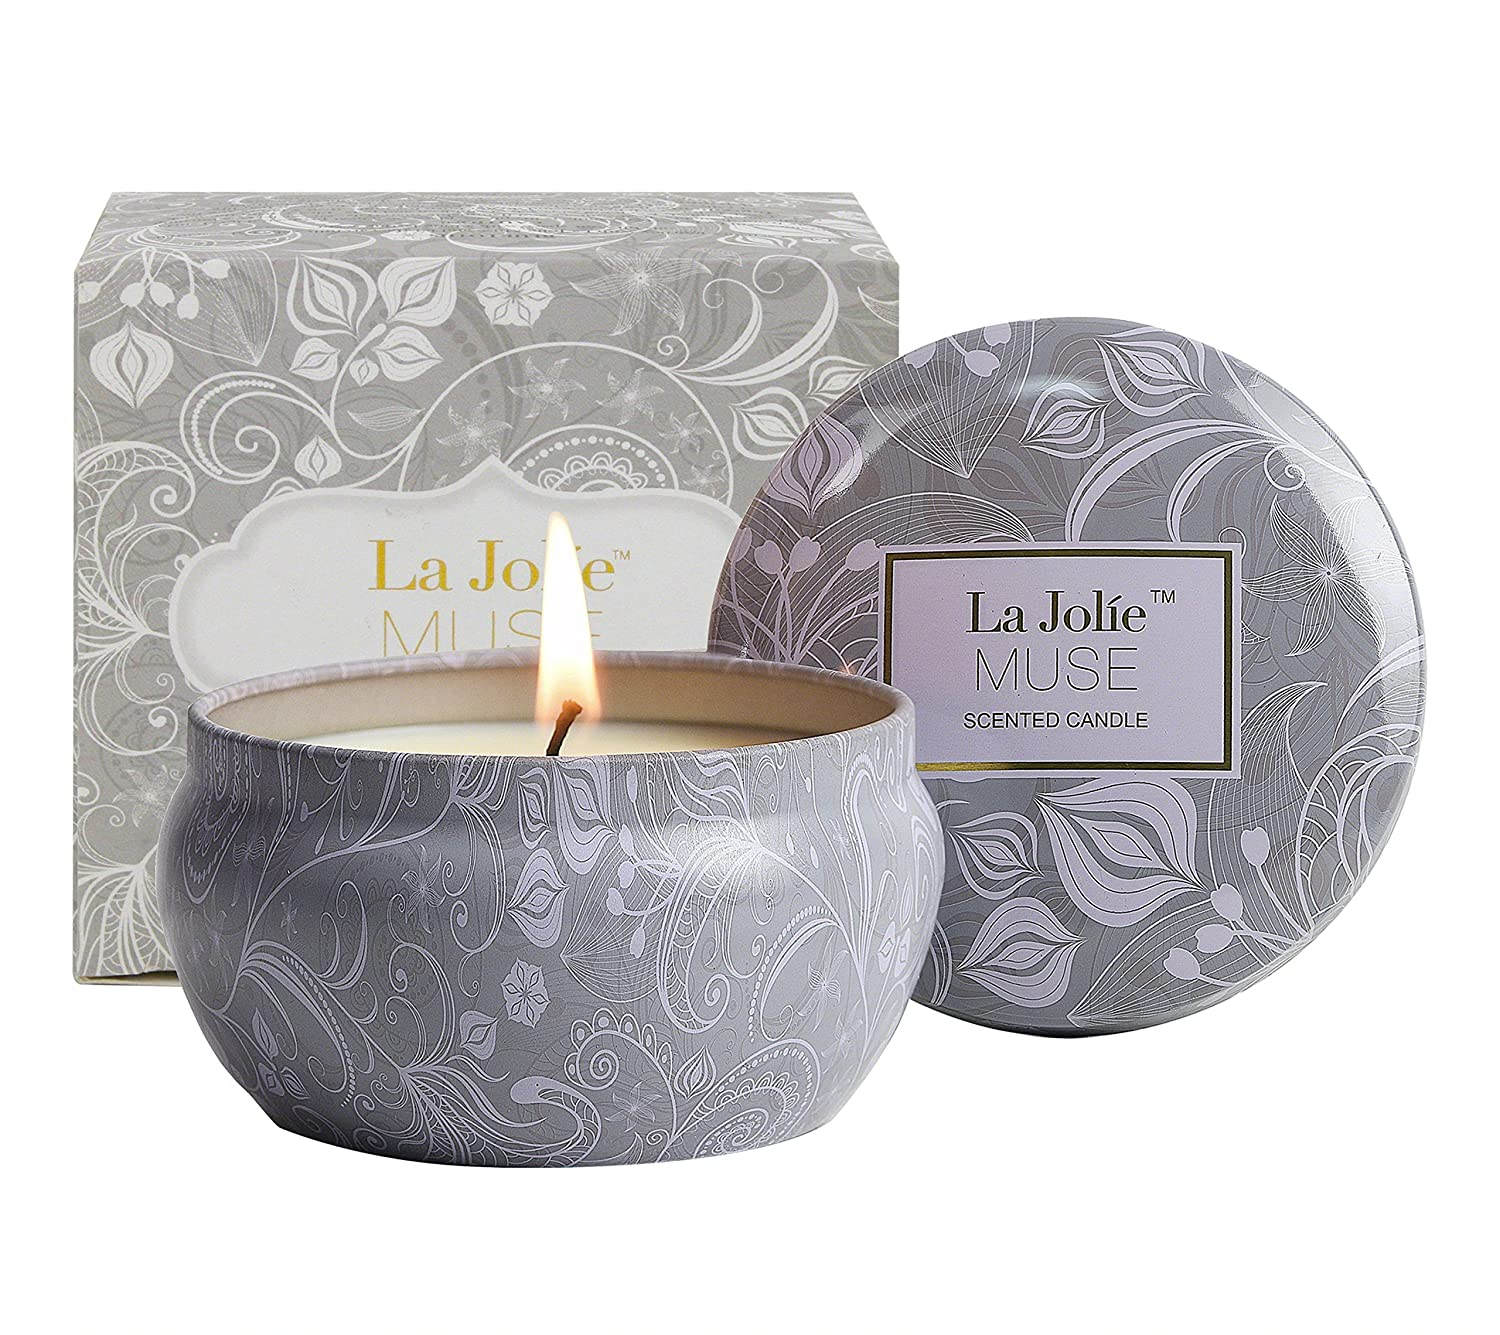 LA JOLIE MUSE Scented Candles Blue Lotus Aromatherapy Candle Soy Wax, 8.1oz Stress Relief Travel Tin, Fresh and Clean FBA_LA JOLIE MUSE